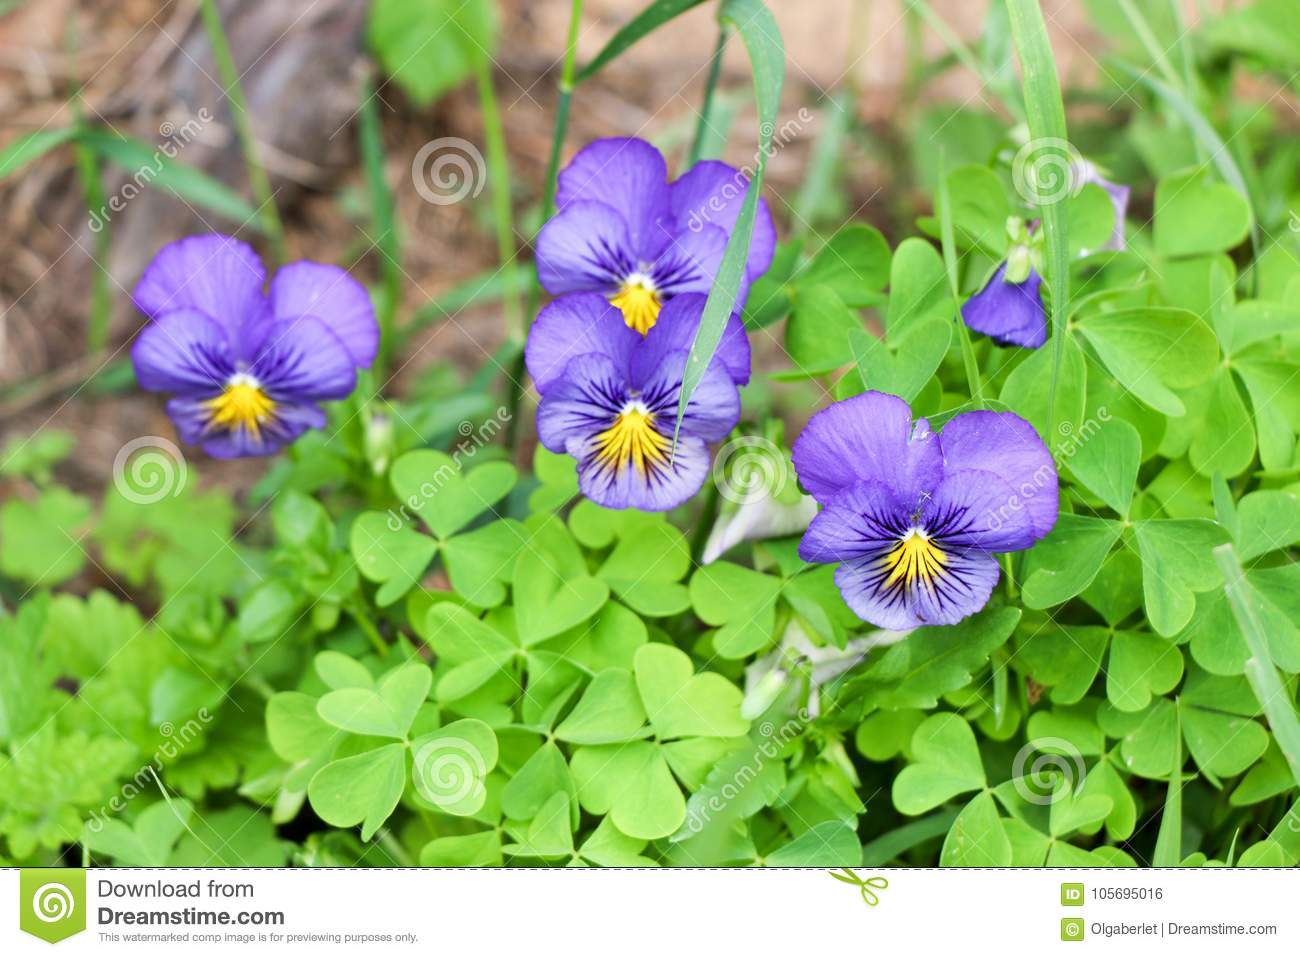 Pansy flowers blooming in the garden background stock for Dream plants for the natural garden